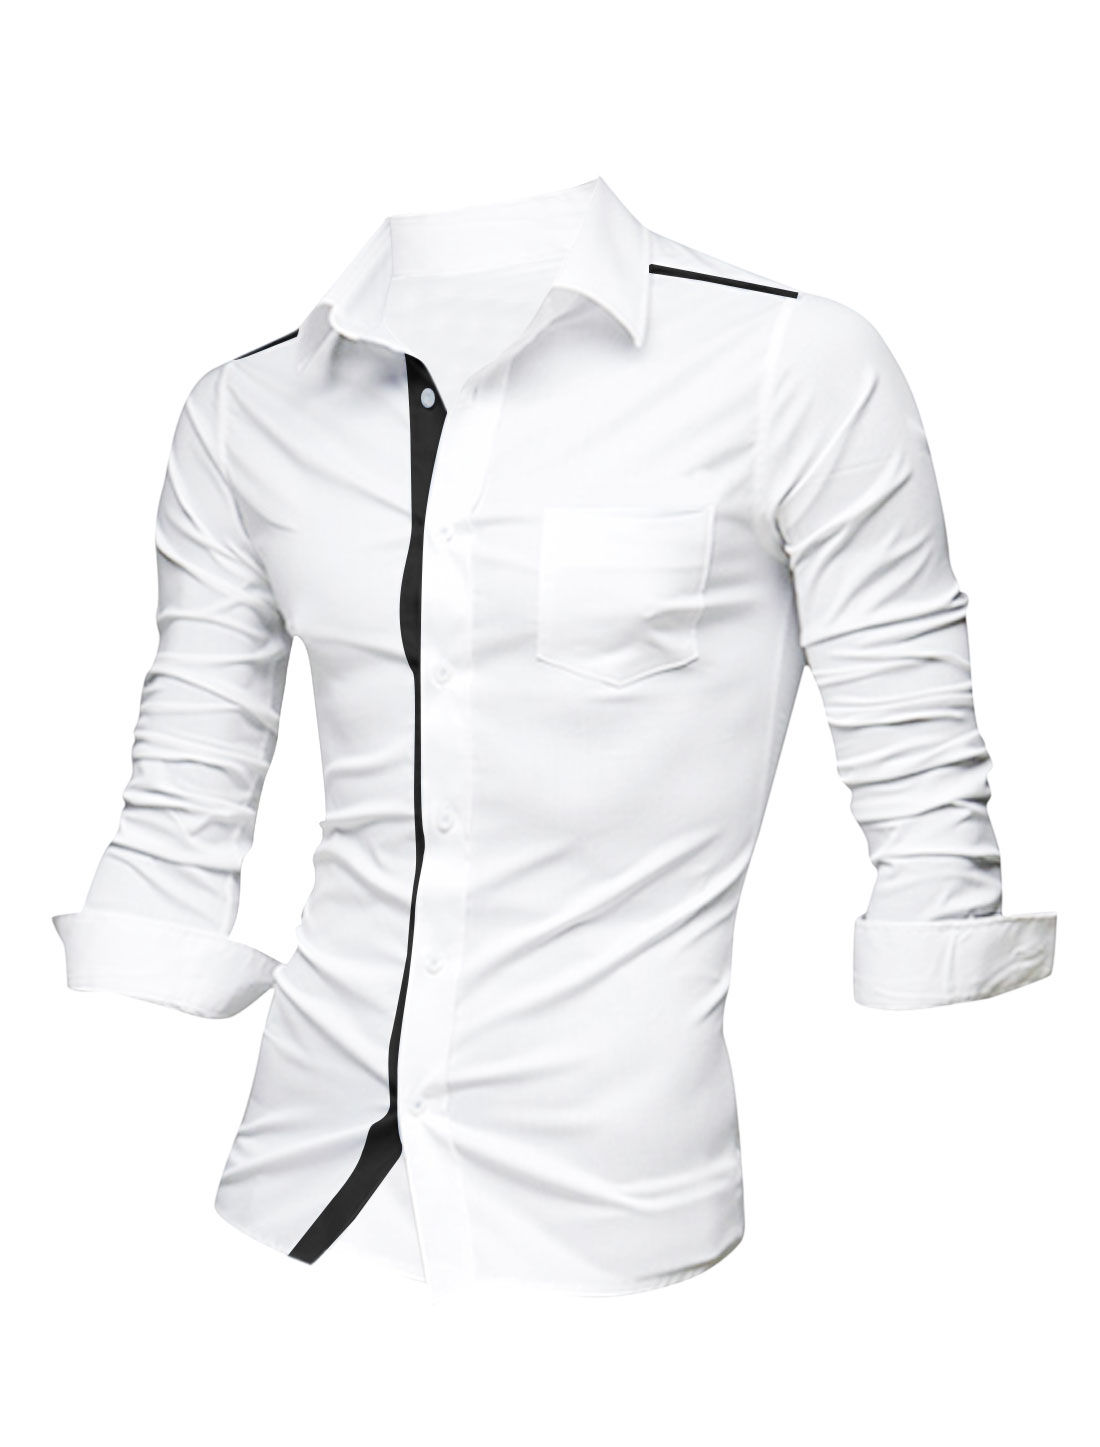 Men Single Breasted One Chest Pocket Soft Shirt White Black L